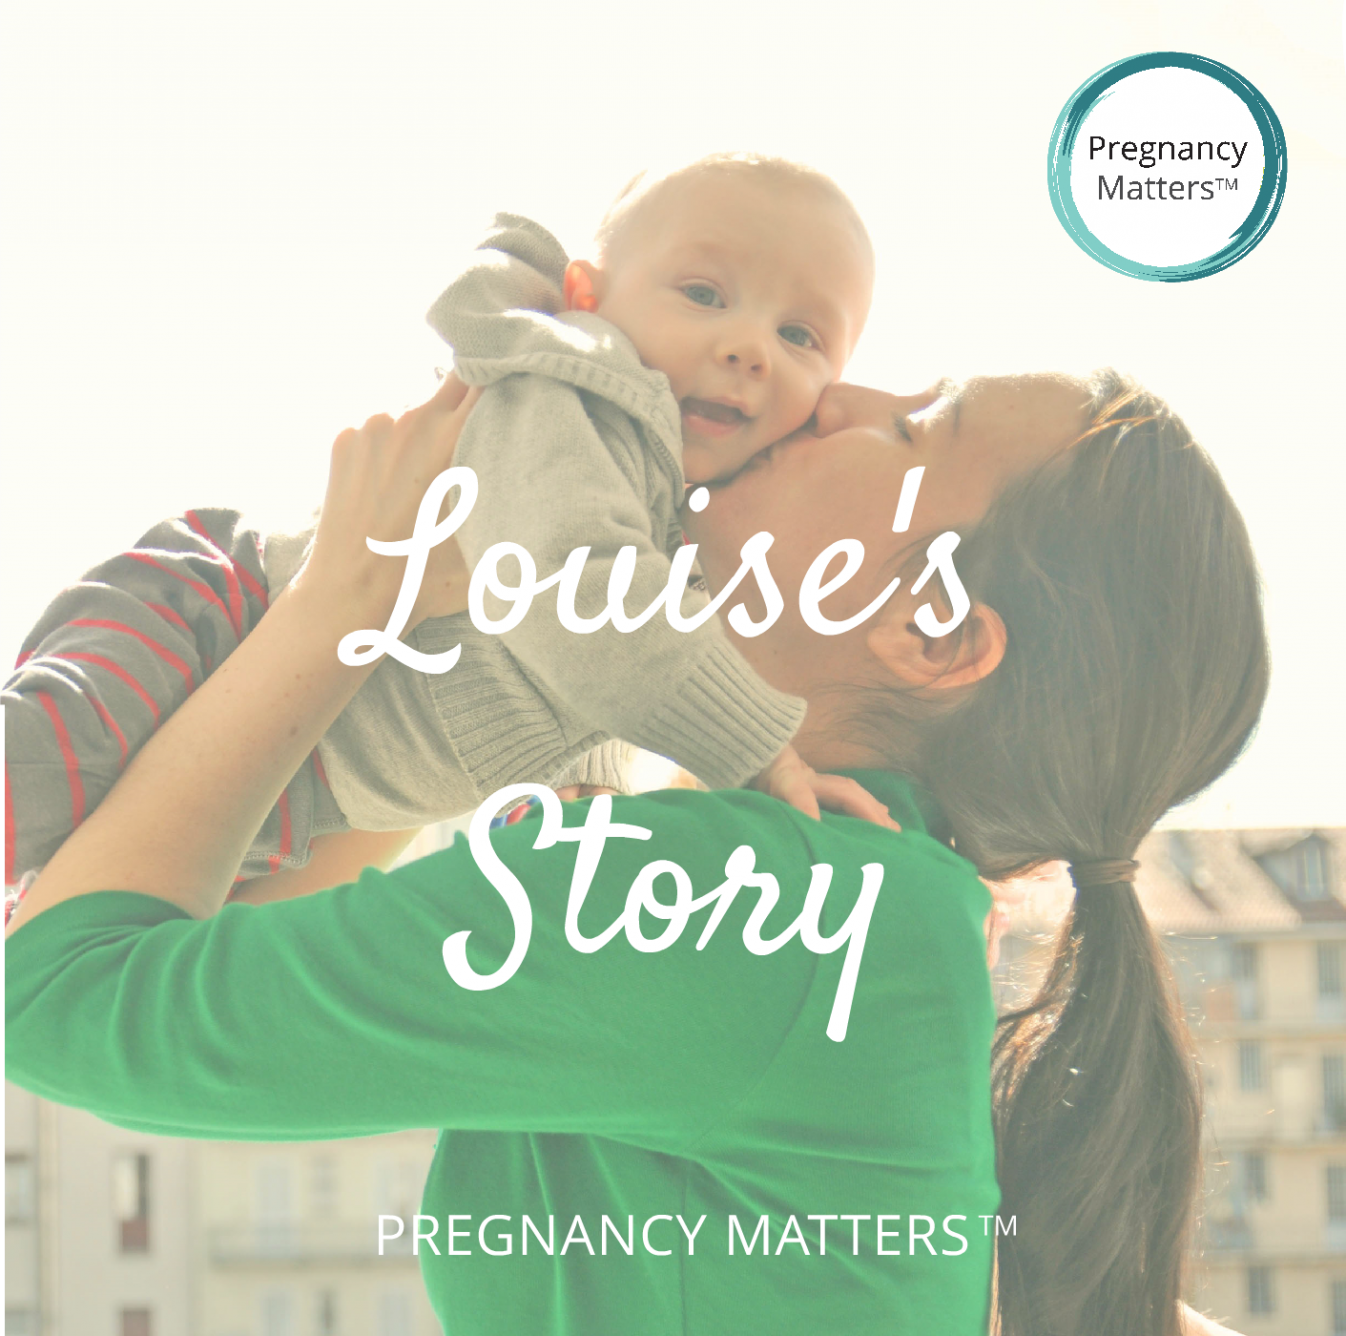 Pregnancy Matters - Louise's Story